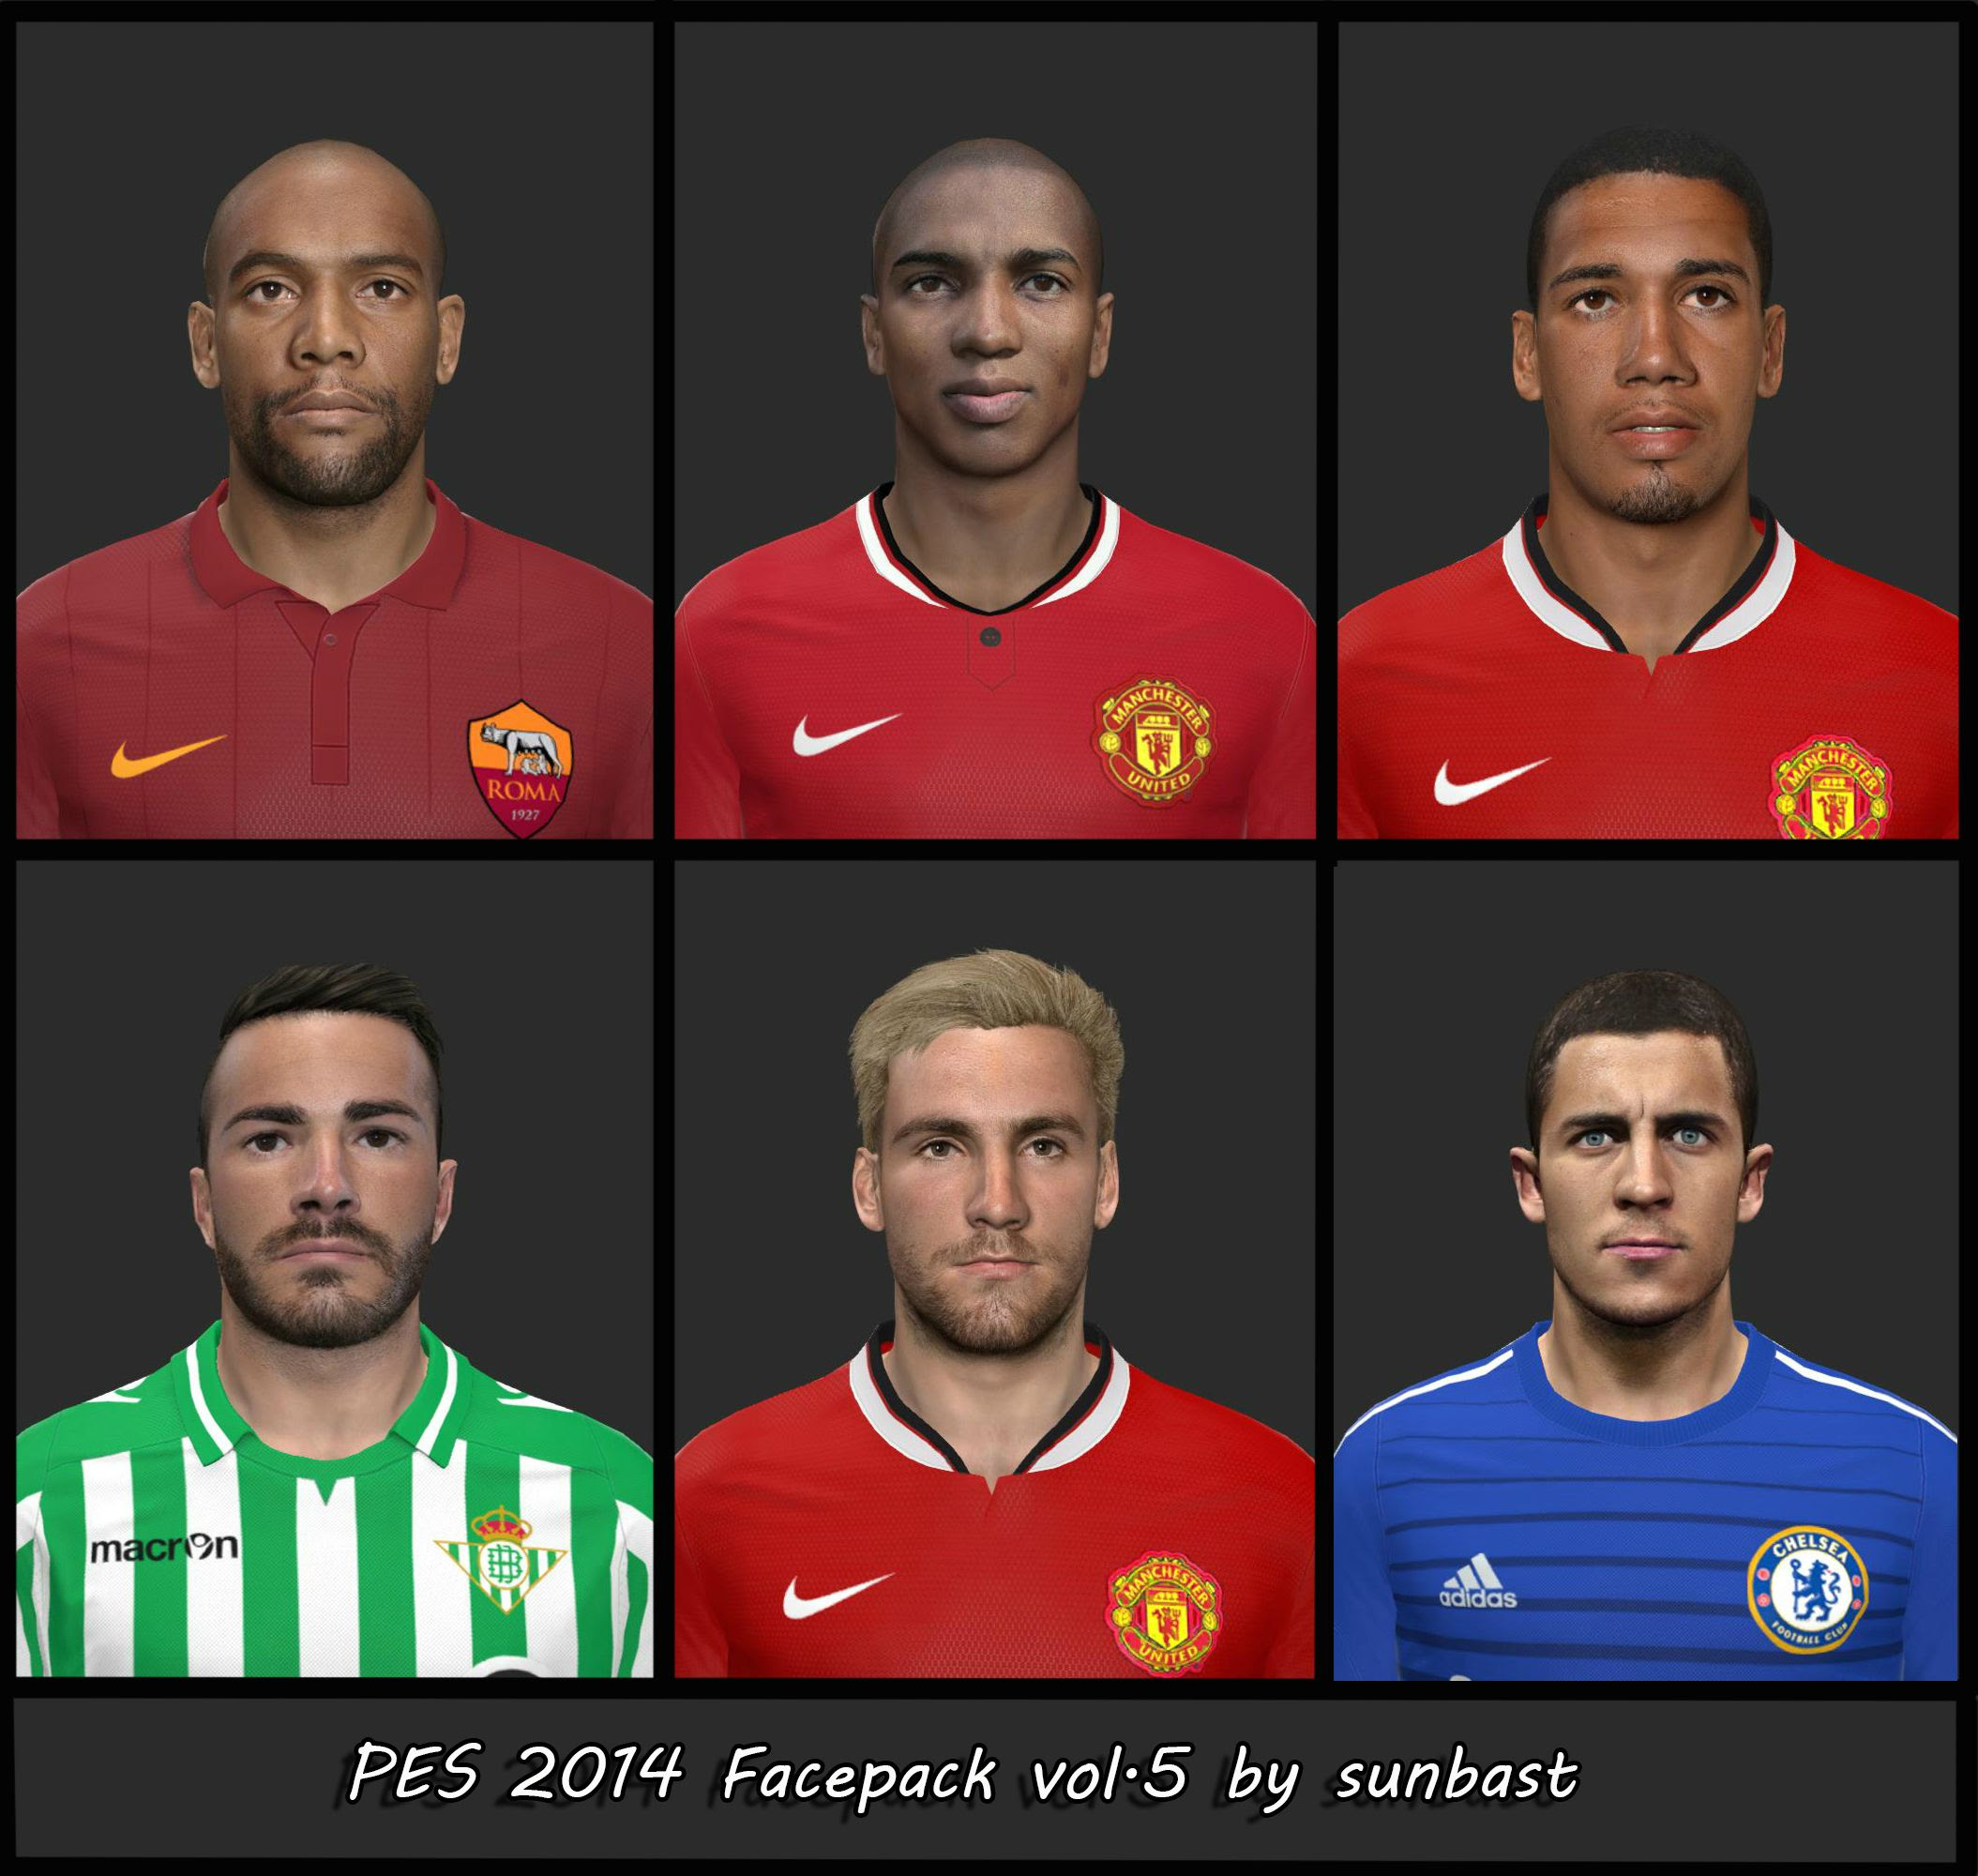 PES 2014 Facepack vol.5 by sunbast